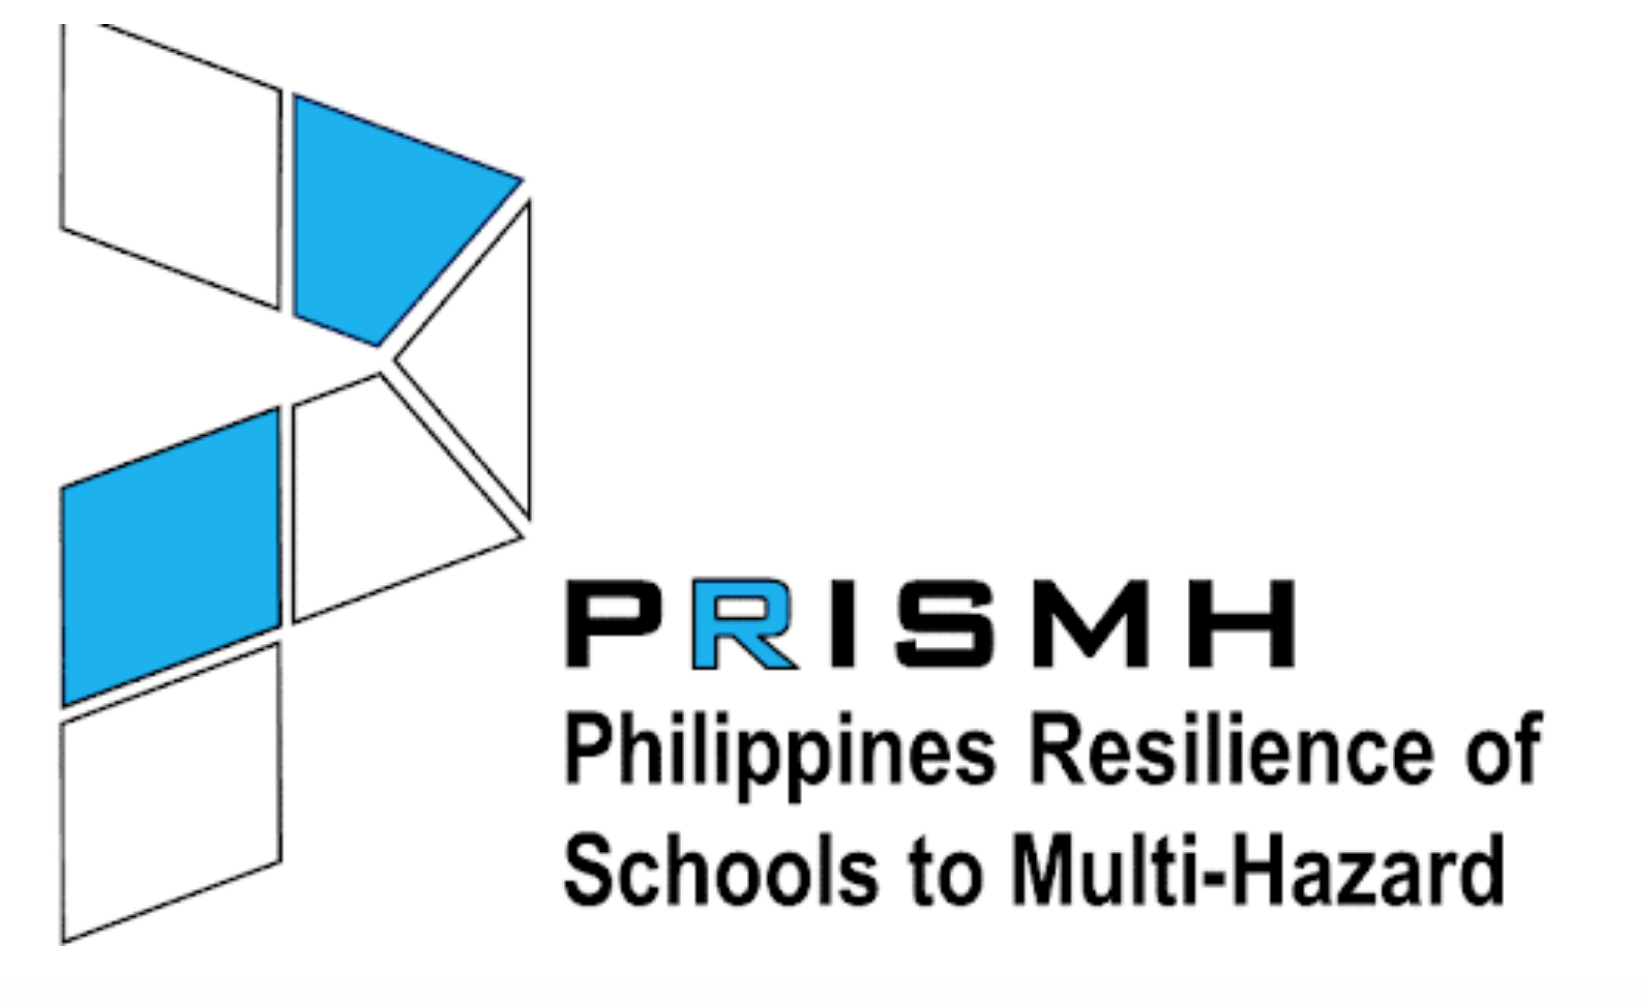 Philippines Resilience of schools to Multi-Hazard (PRISMH)